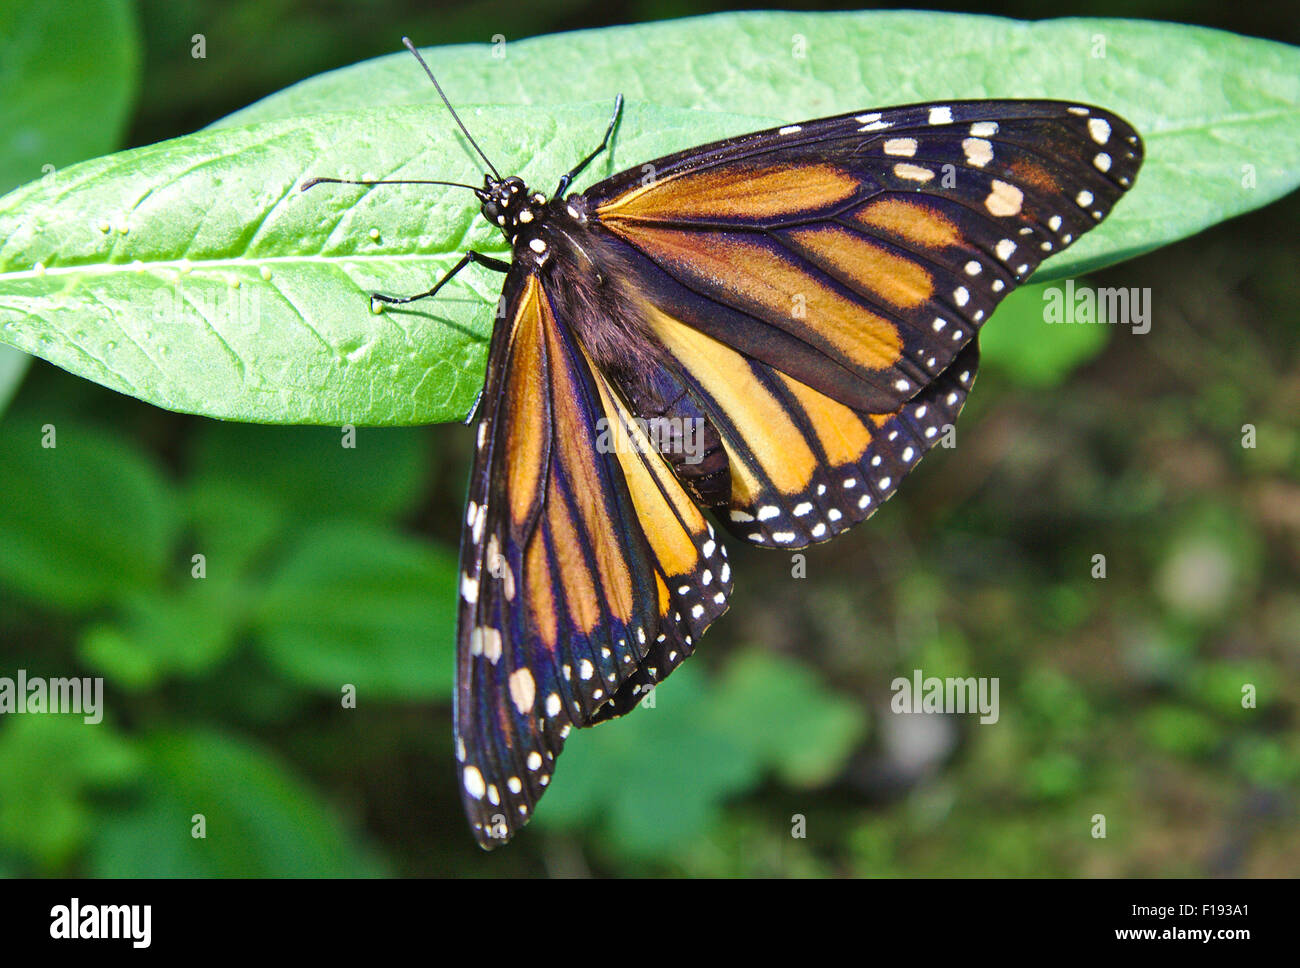 Single Monarch Butterfly on some green leaves - Stock Image